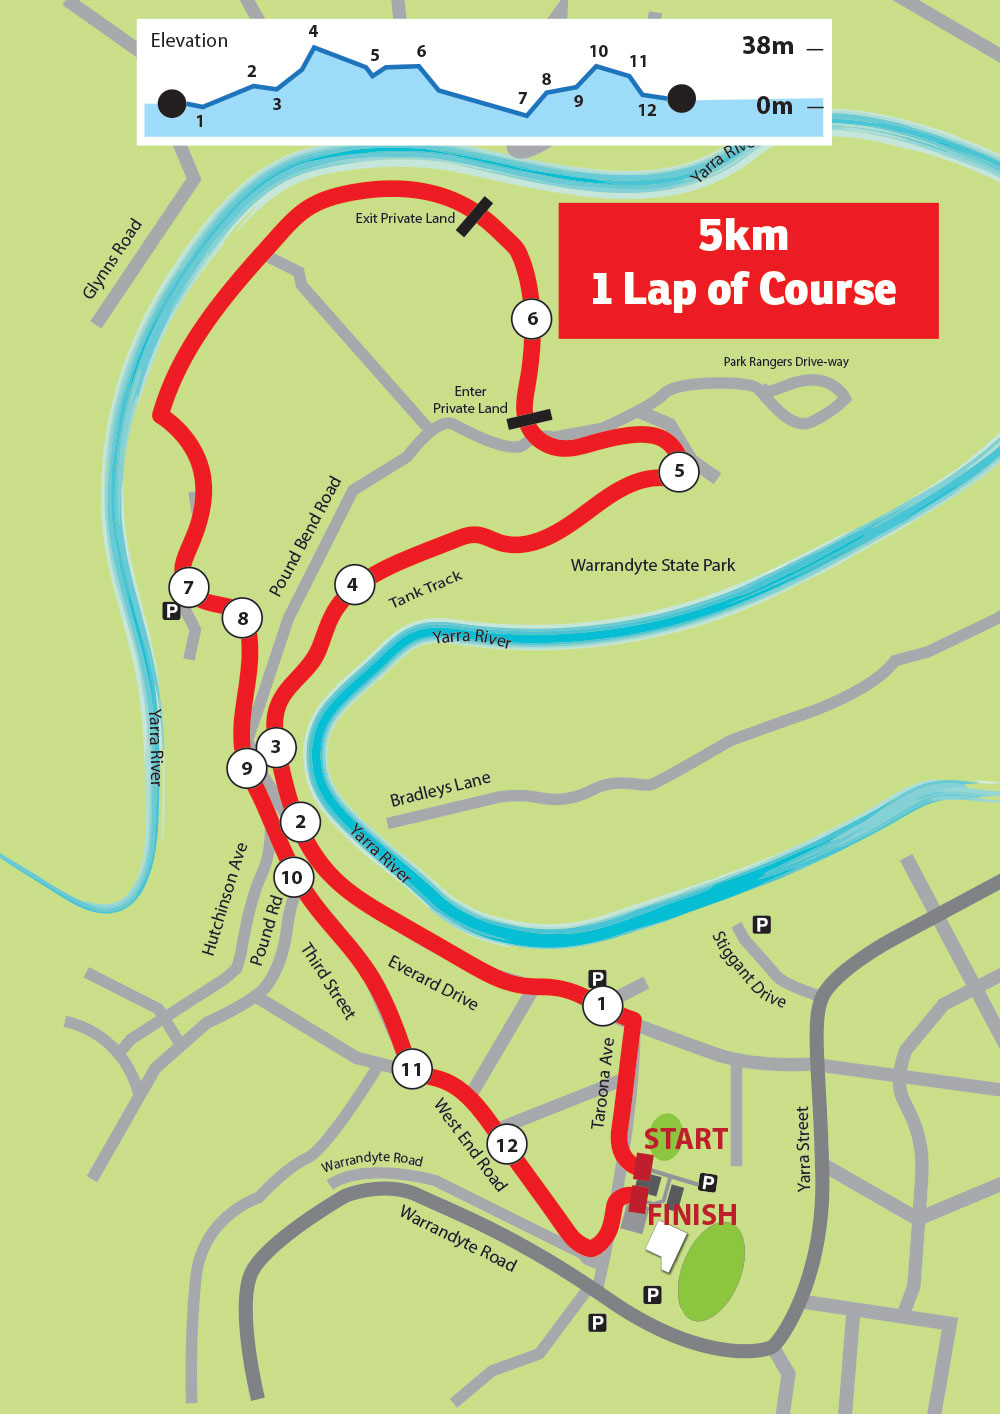 5km course run warrandyte